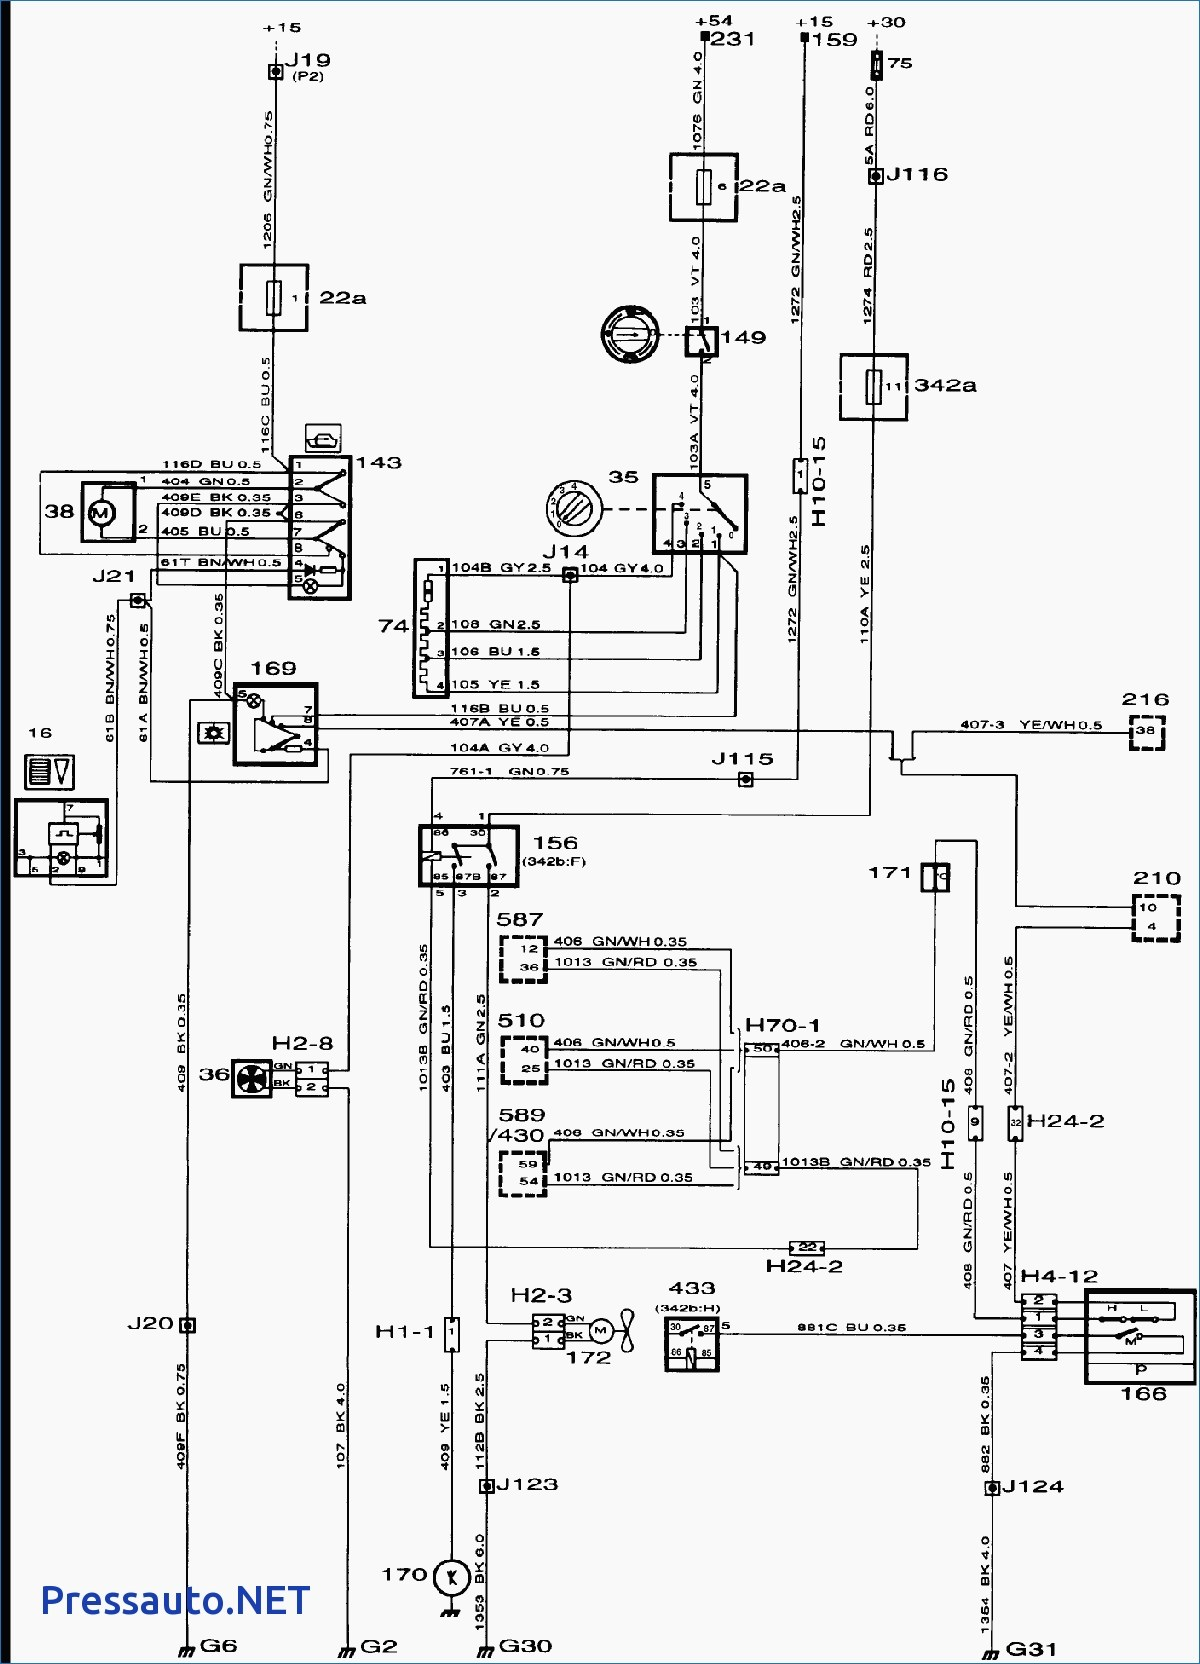 Electrical Drawing At Free For Personal Use A House Wiring Diagram 1200x1664 Whole